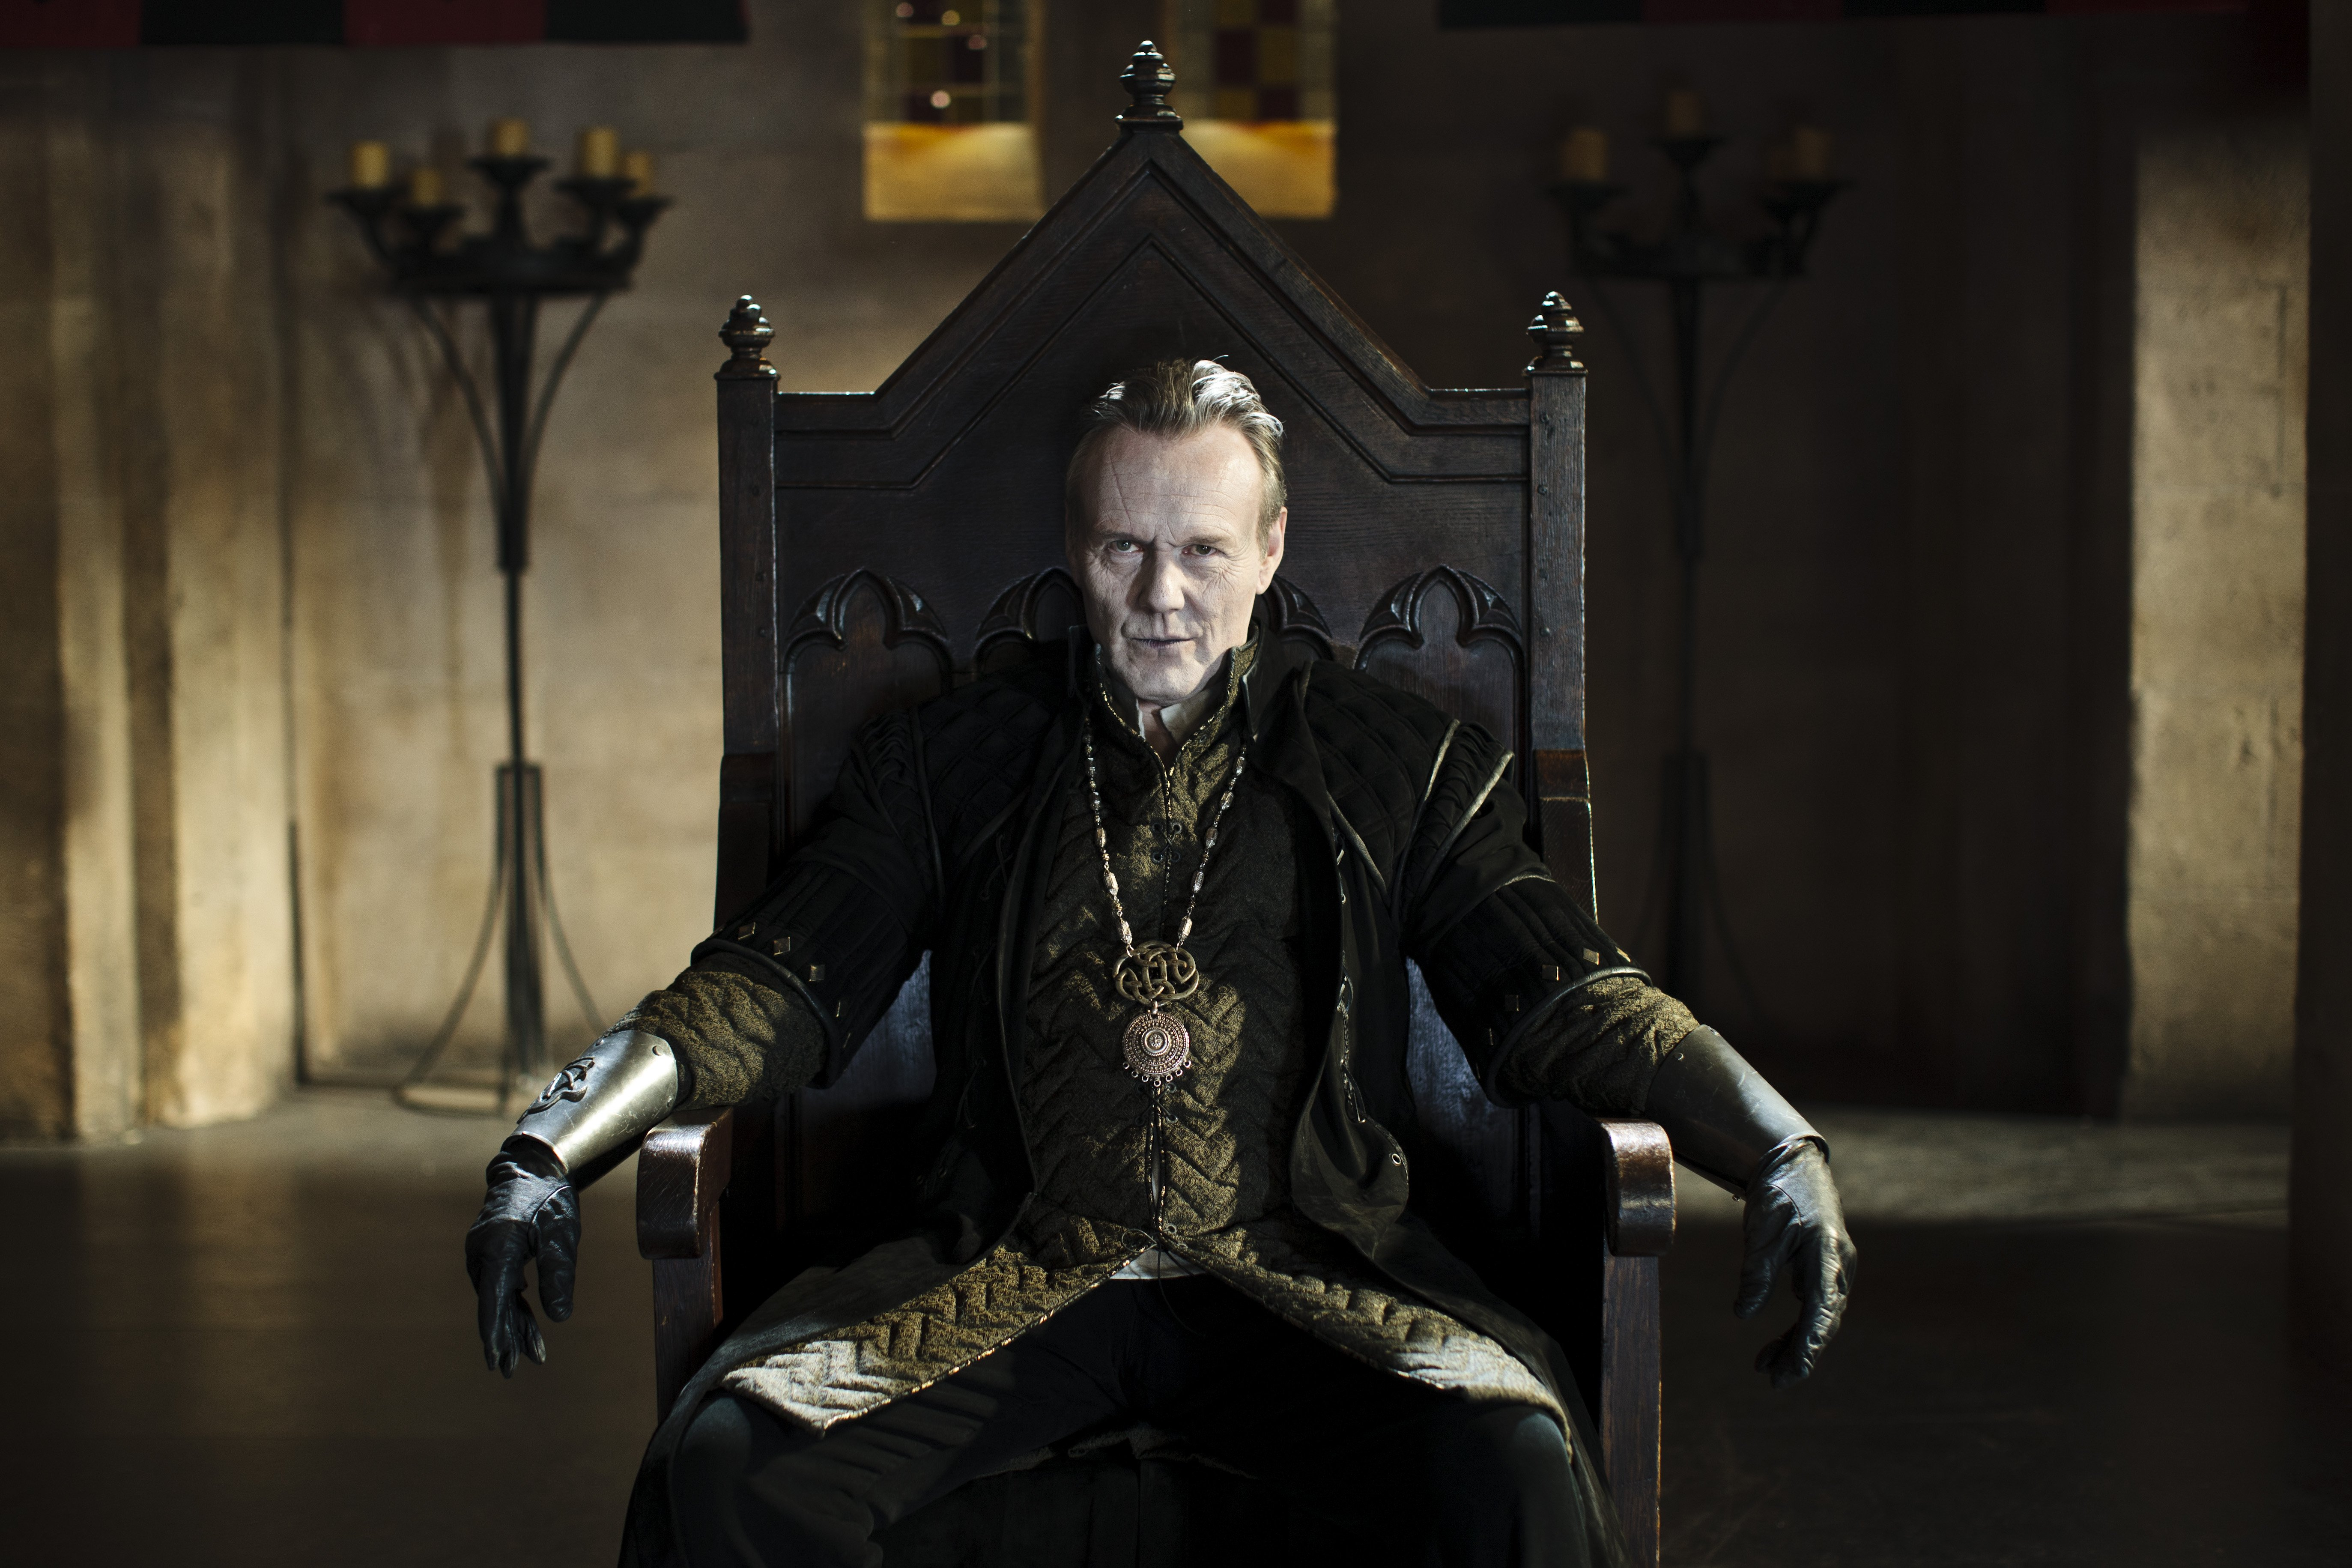 Merlin The Death Song Of Uther Pendragon Tv Episode 2012 Imdb